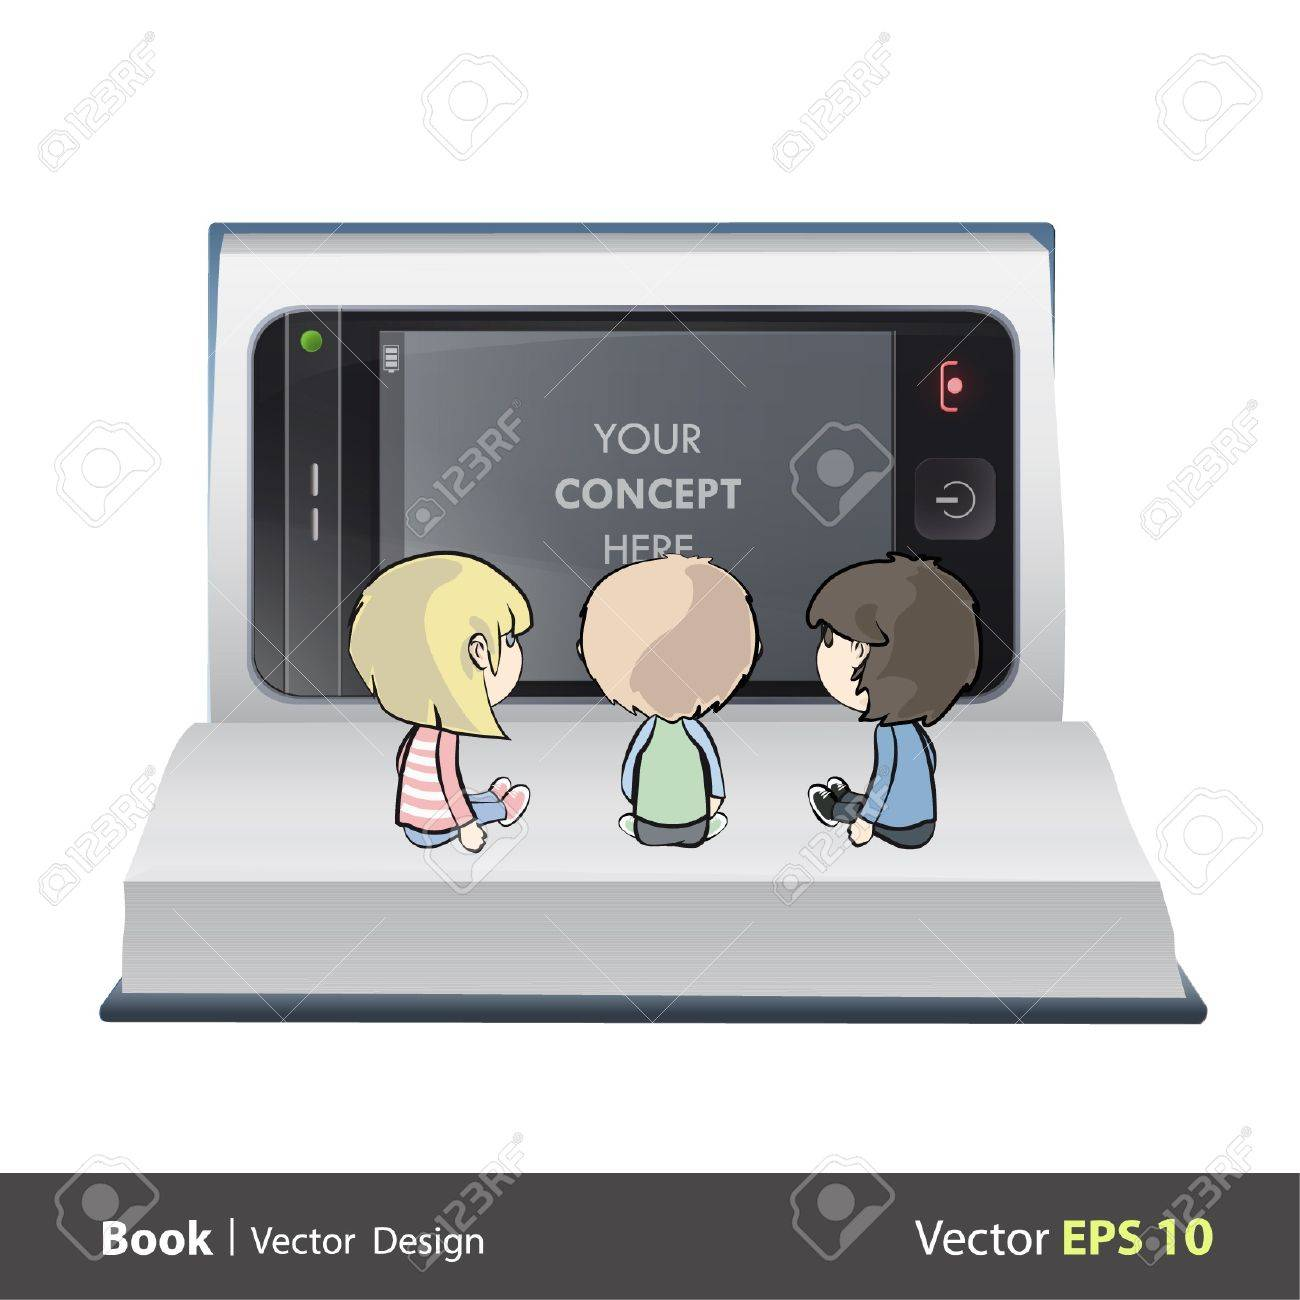 Three children watching TV on a book. Vector design. Stock Vector - 17613769